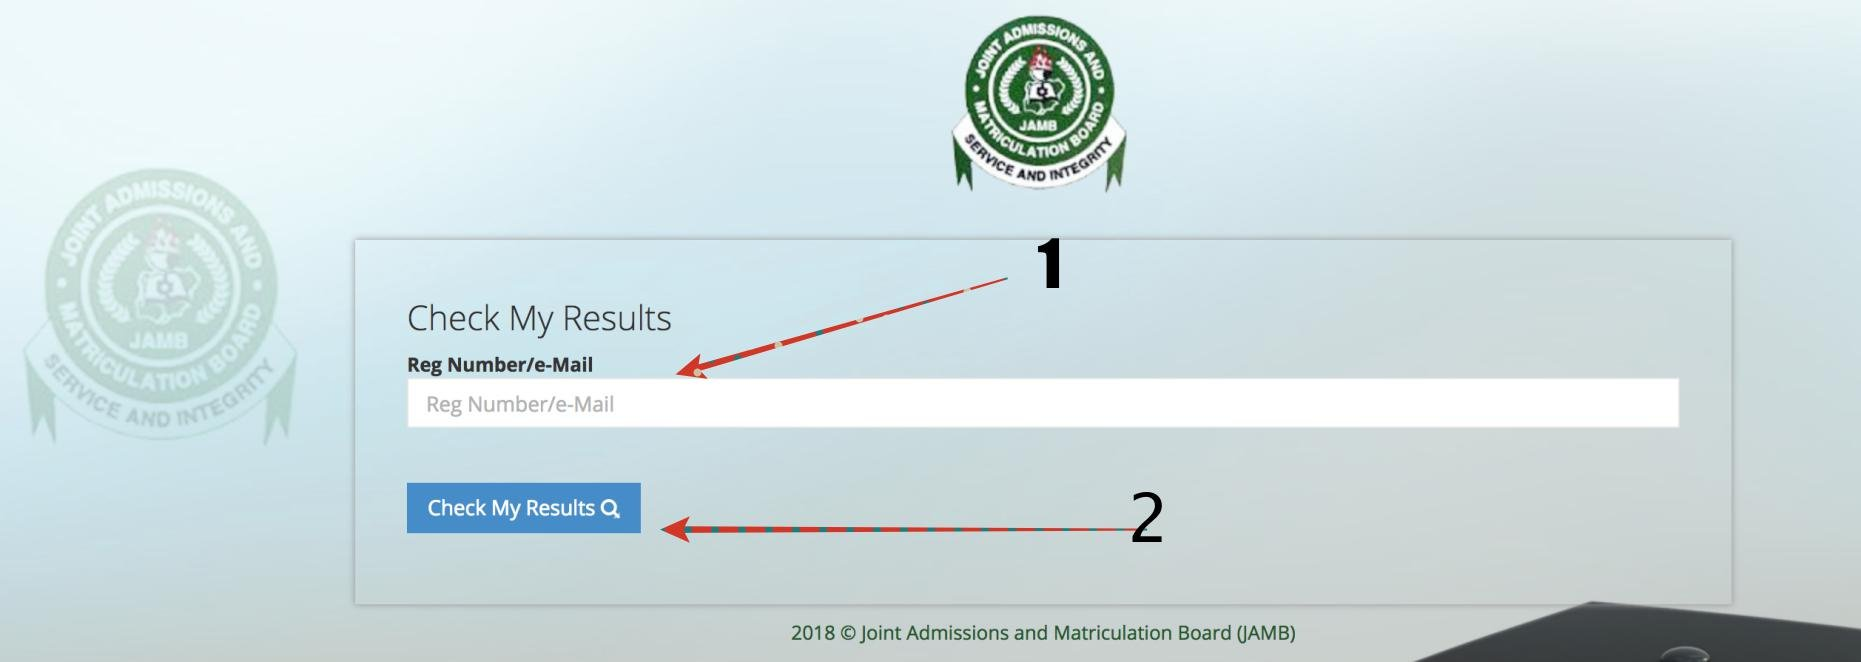 How to Check 2019 JAMB UTME Results Through Sms & Online